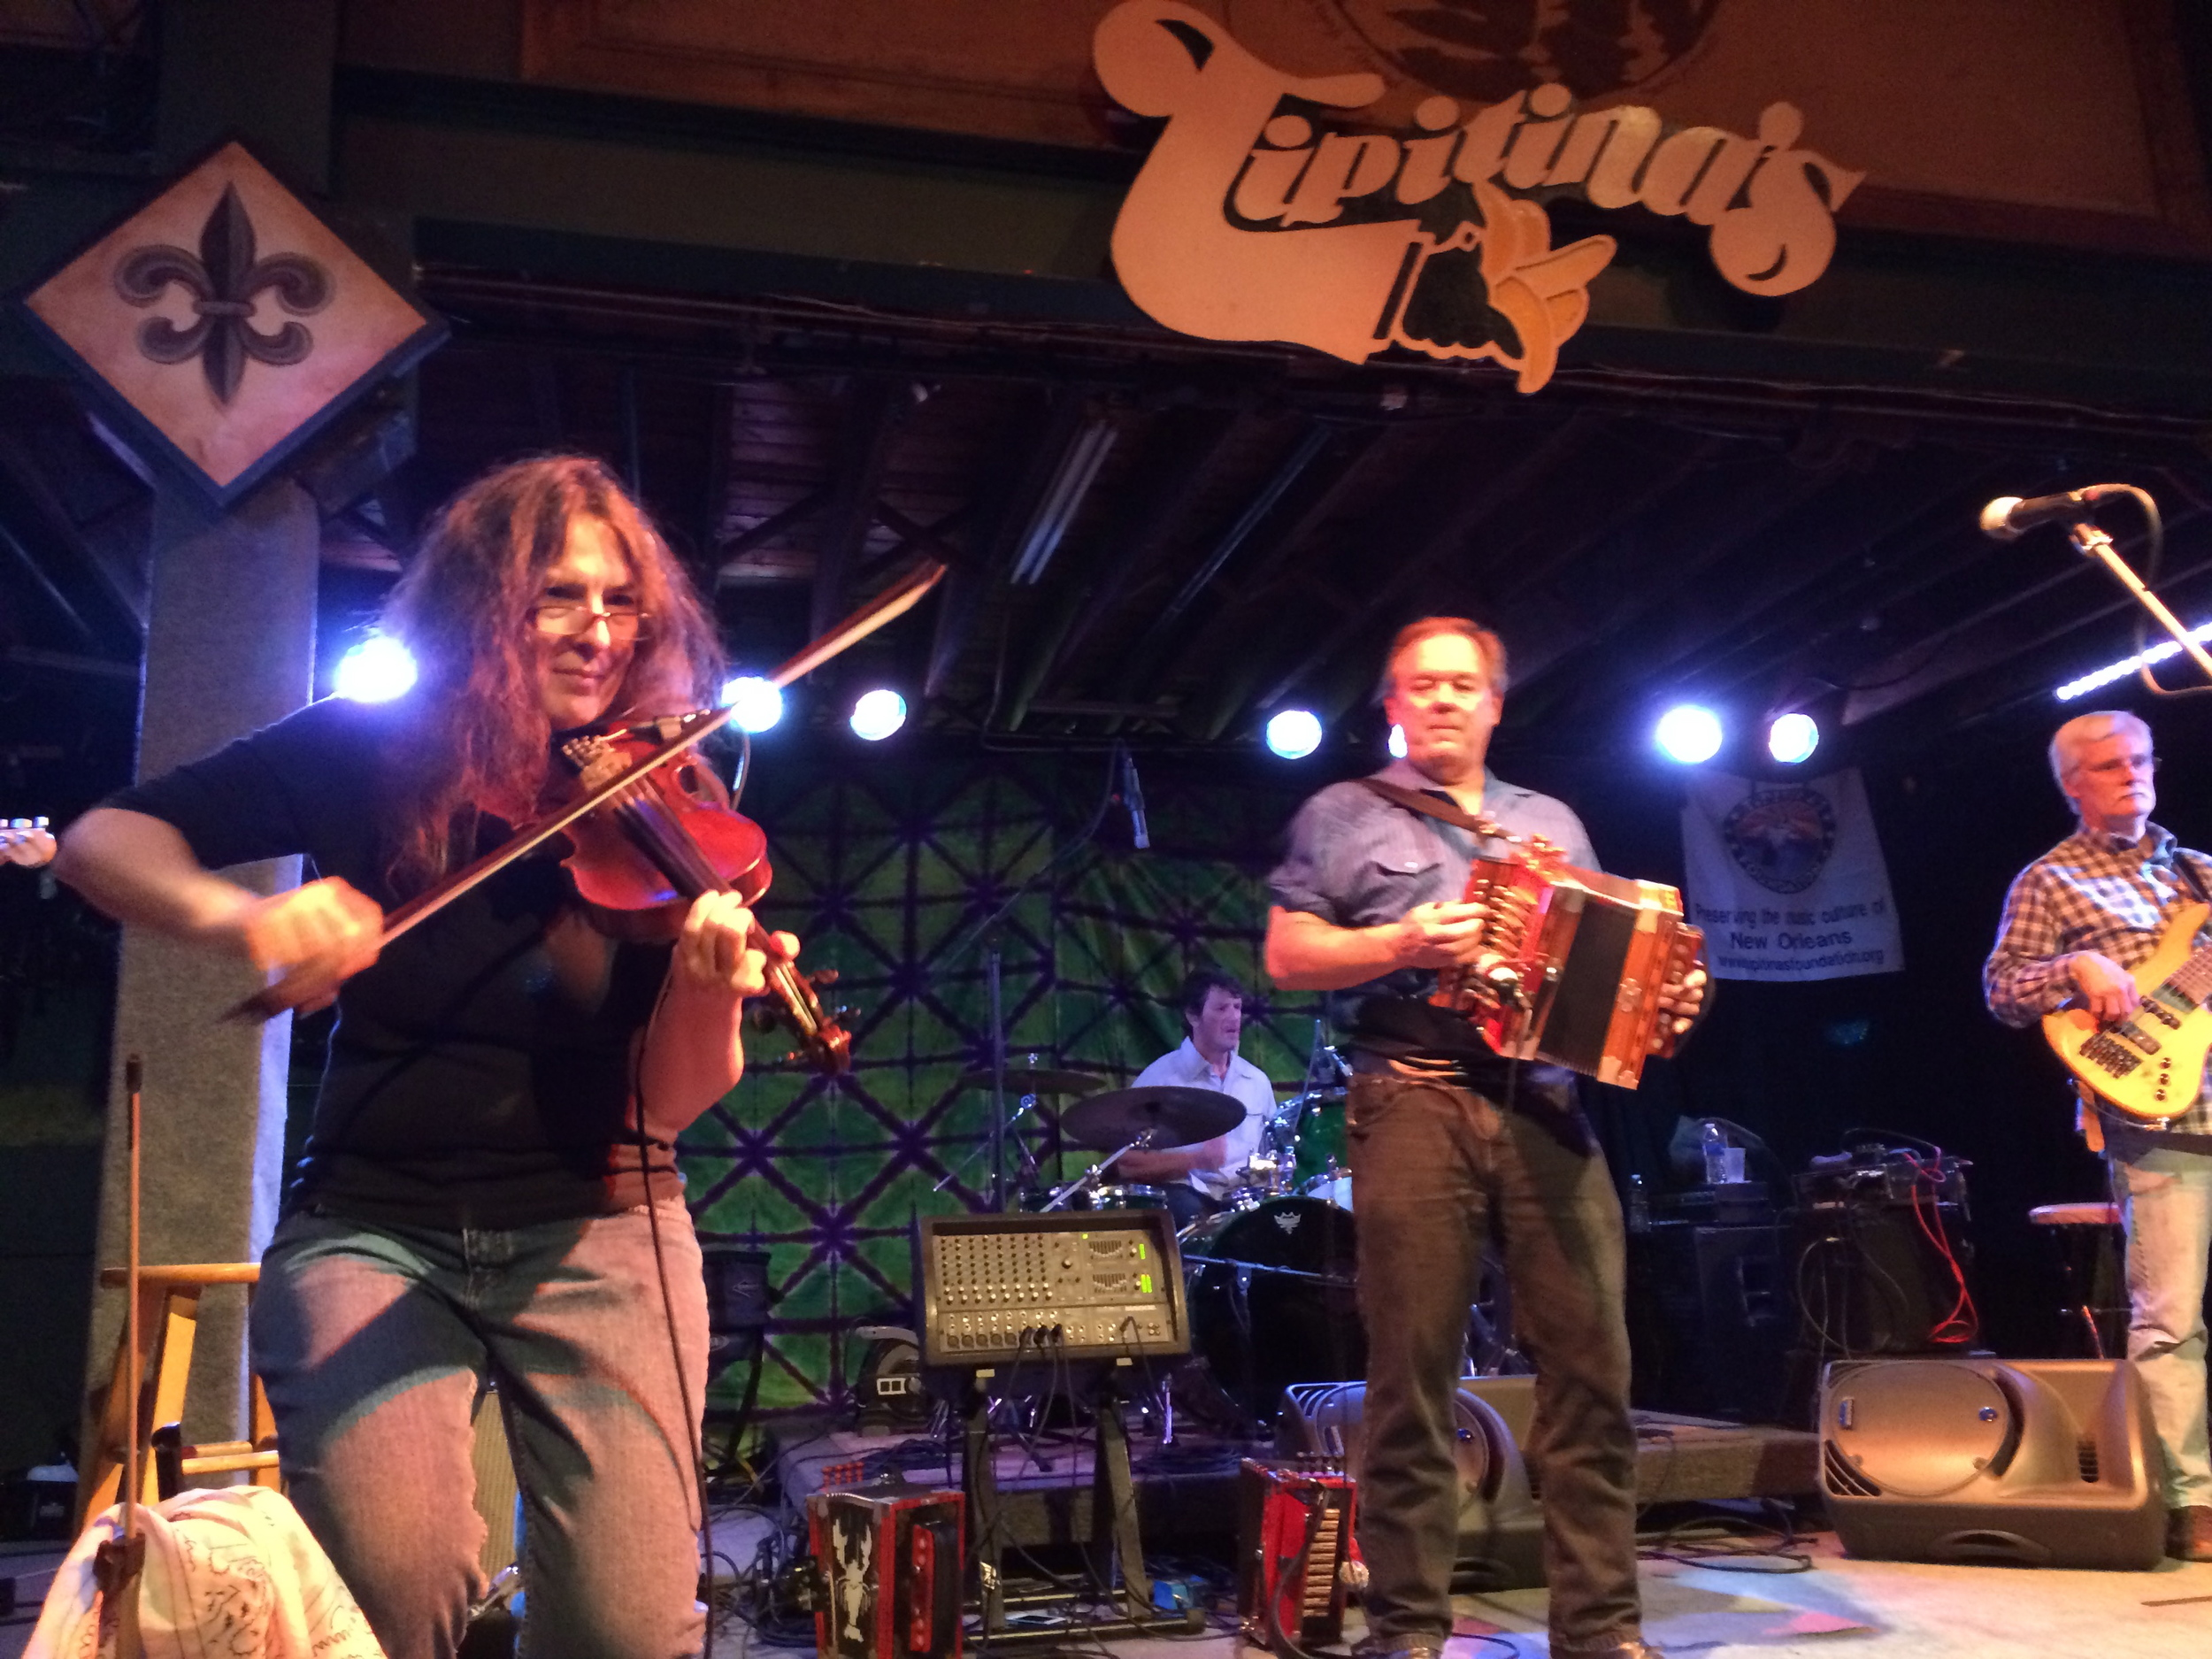 A great night of music with Gina Forsyth, Bruce Daigrepont and friends at Tipitina's in New Orleans!